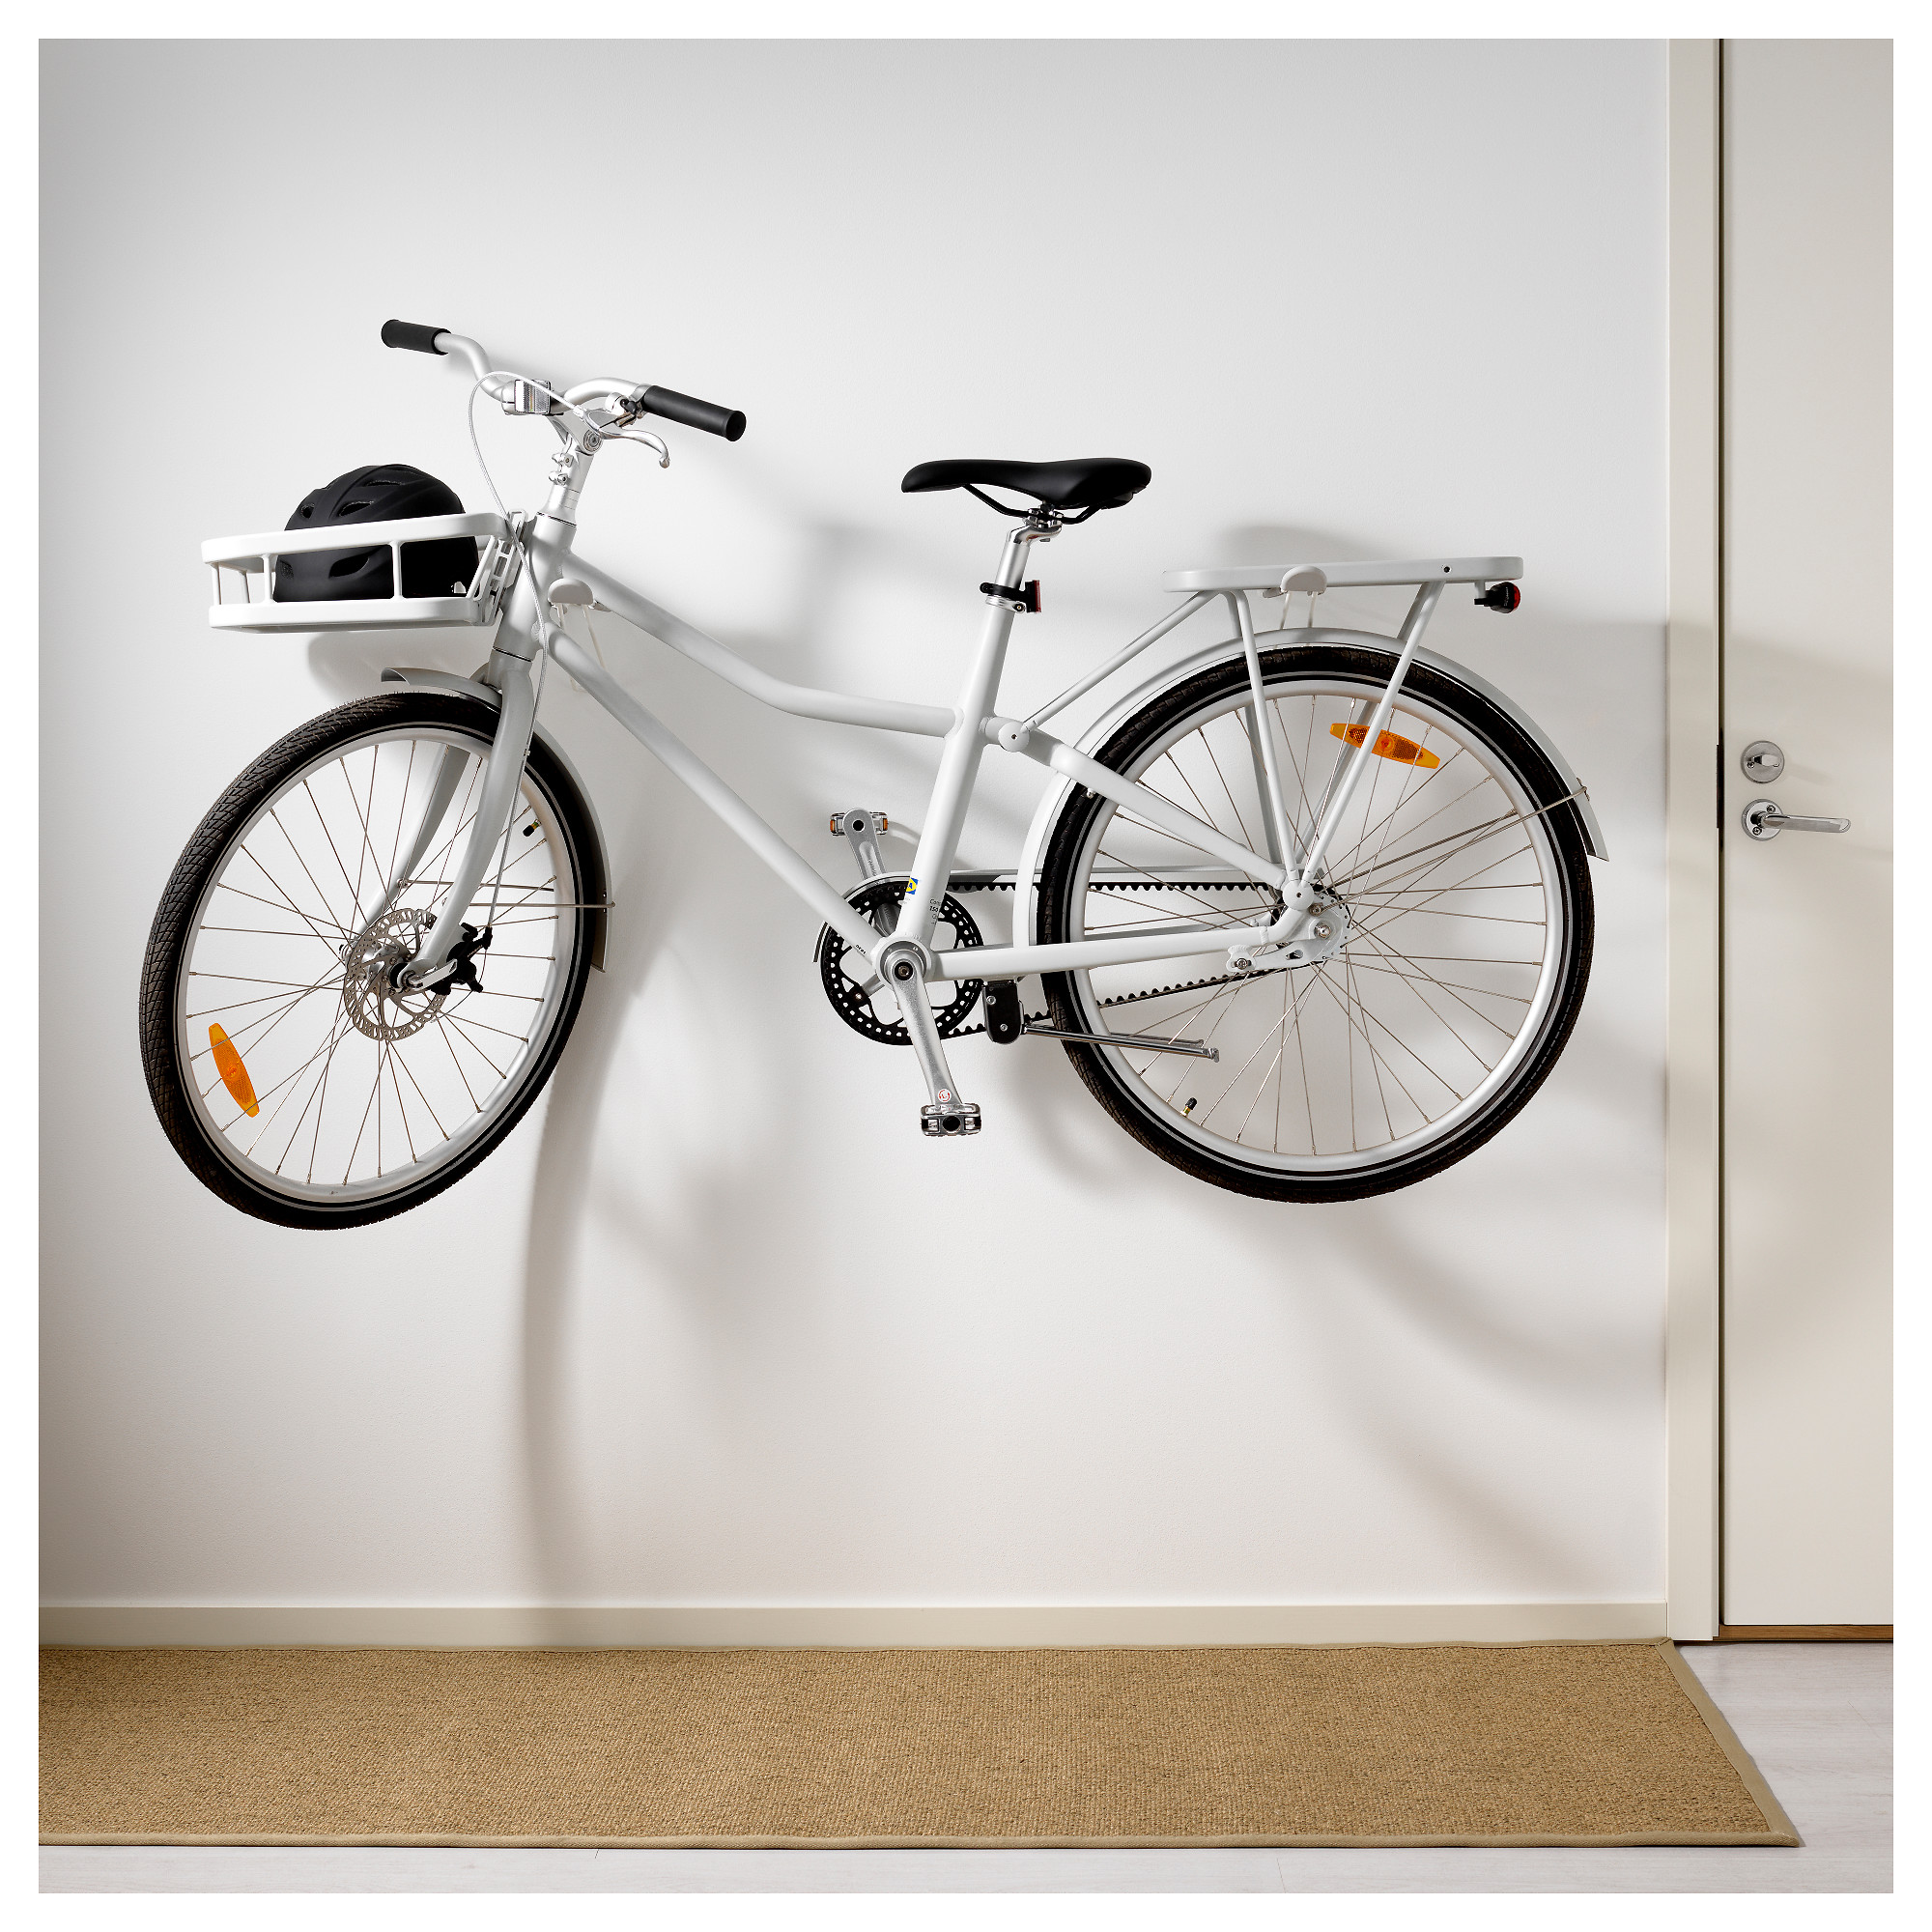 rack ceilings dahanger pin to bikes hook multiple floor dan pedal bike system hanging ceiling